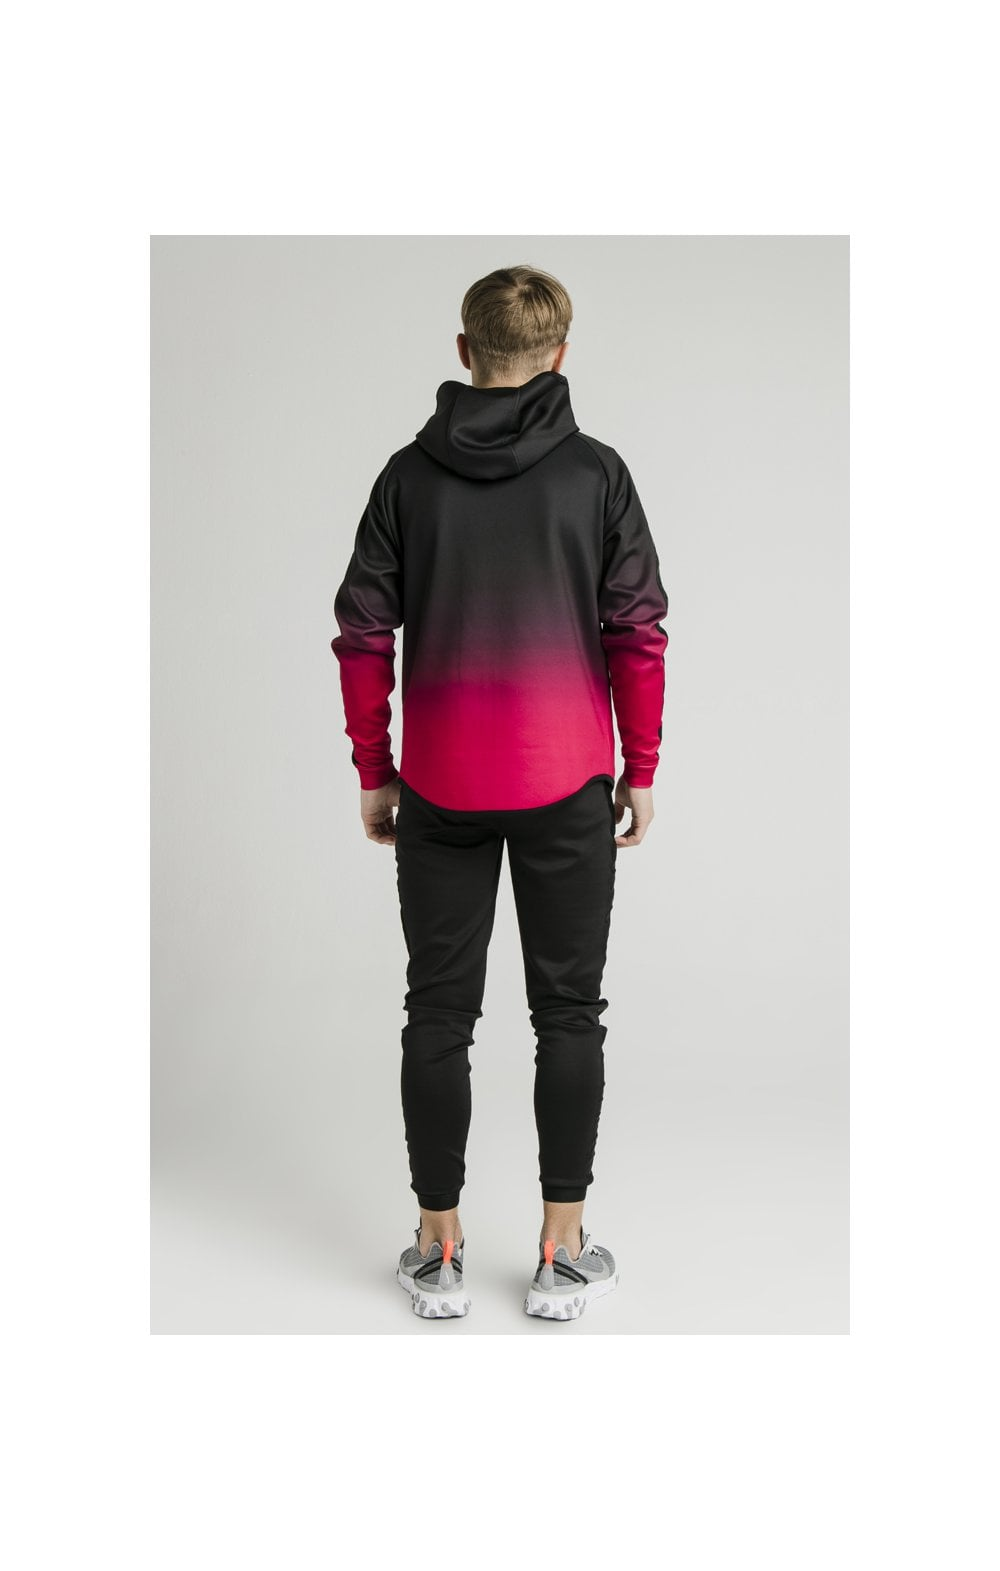 Load image into Gallery viewer, Illusive London Athlete Zip Through Fade Hoodie - Black & Pink (8)